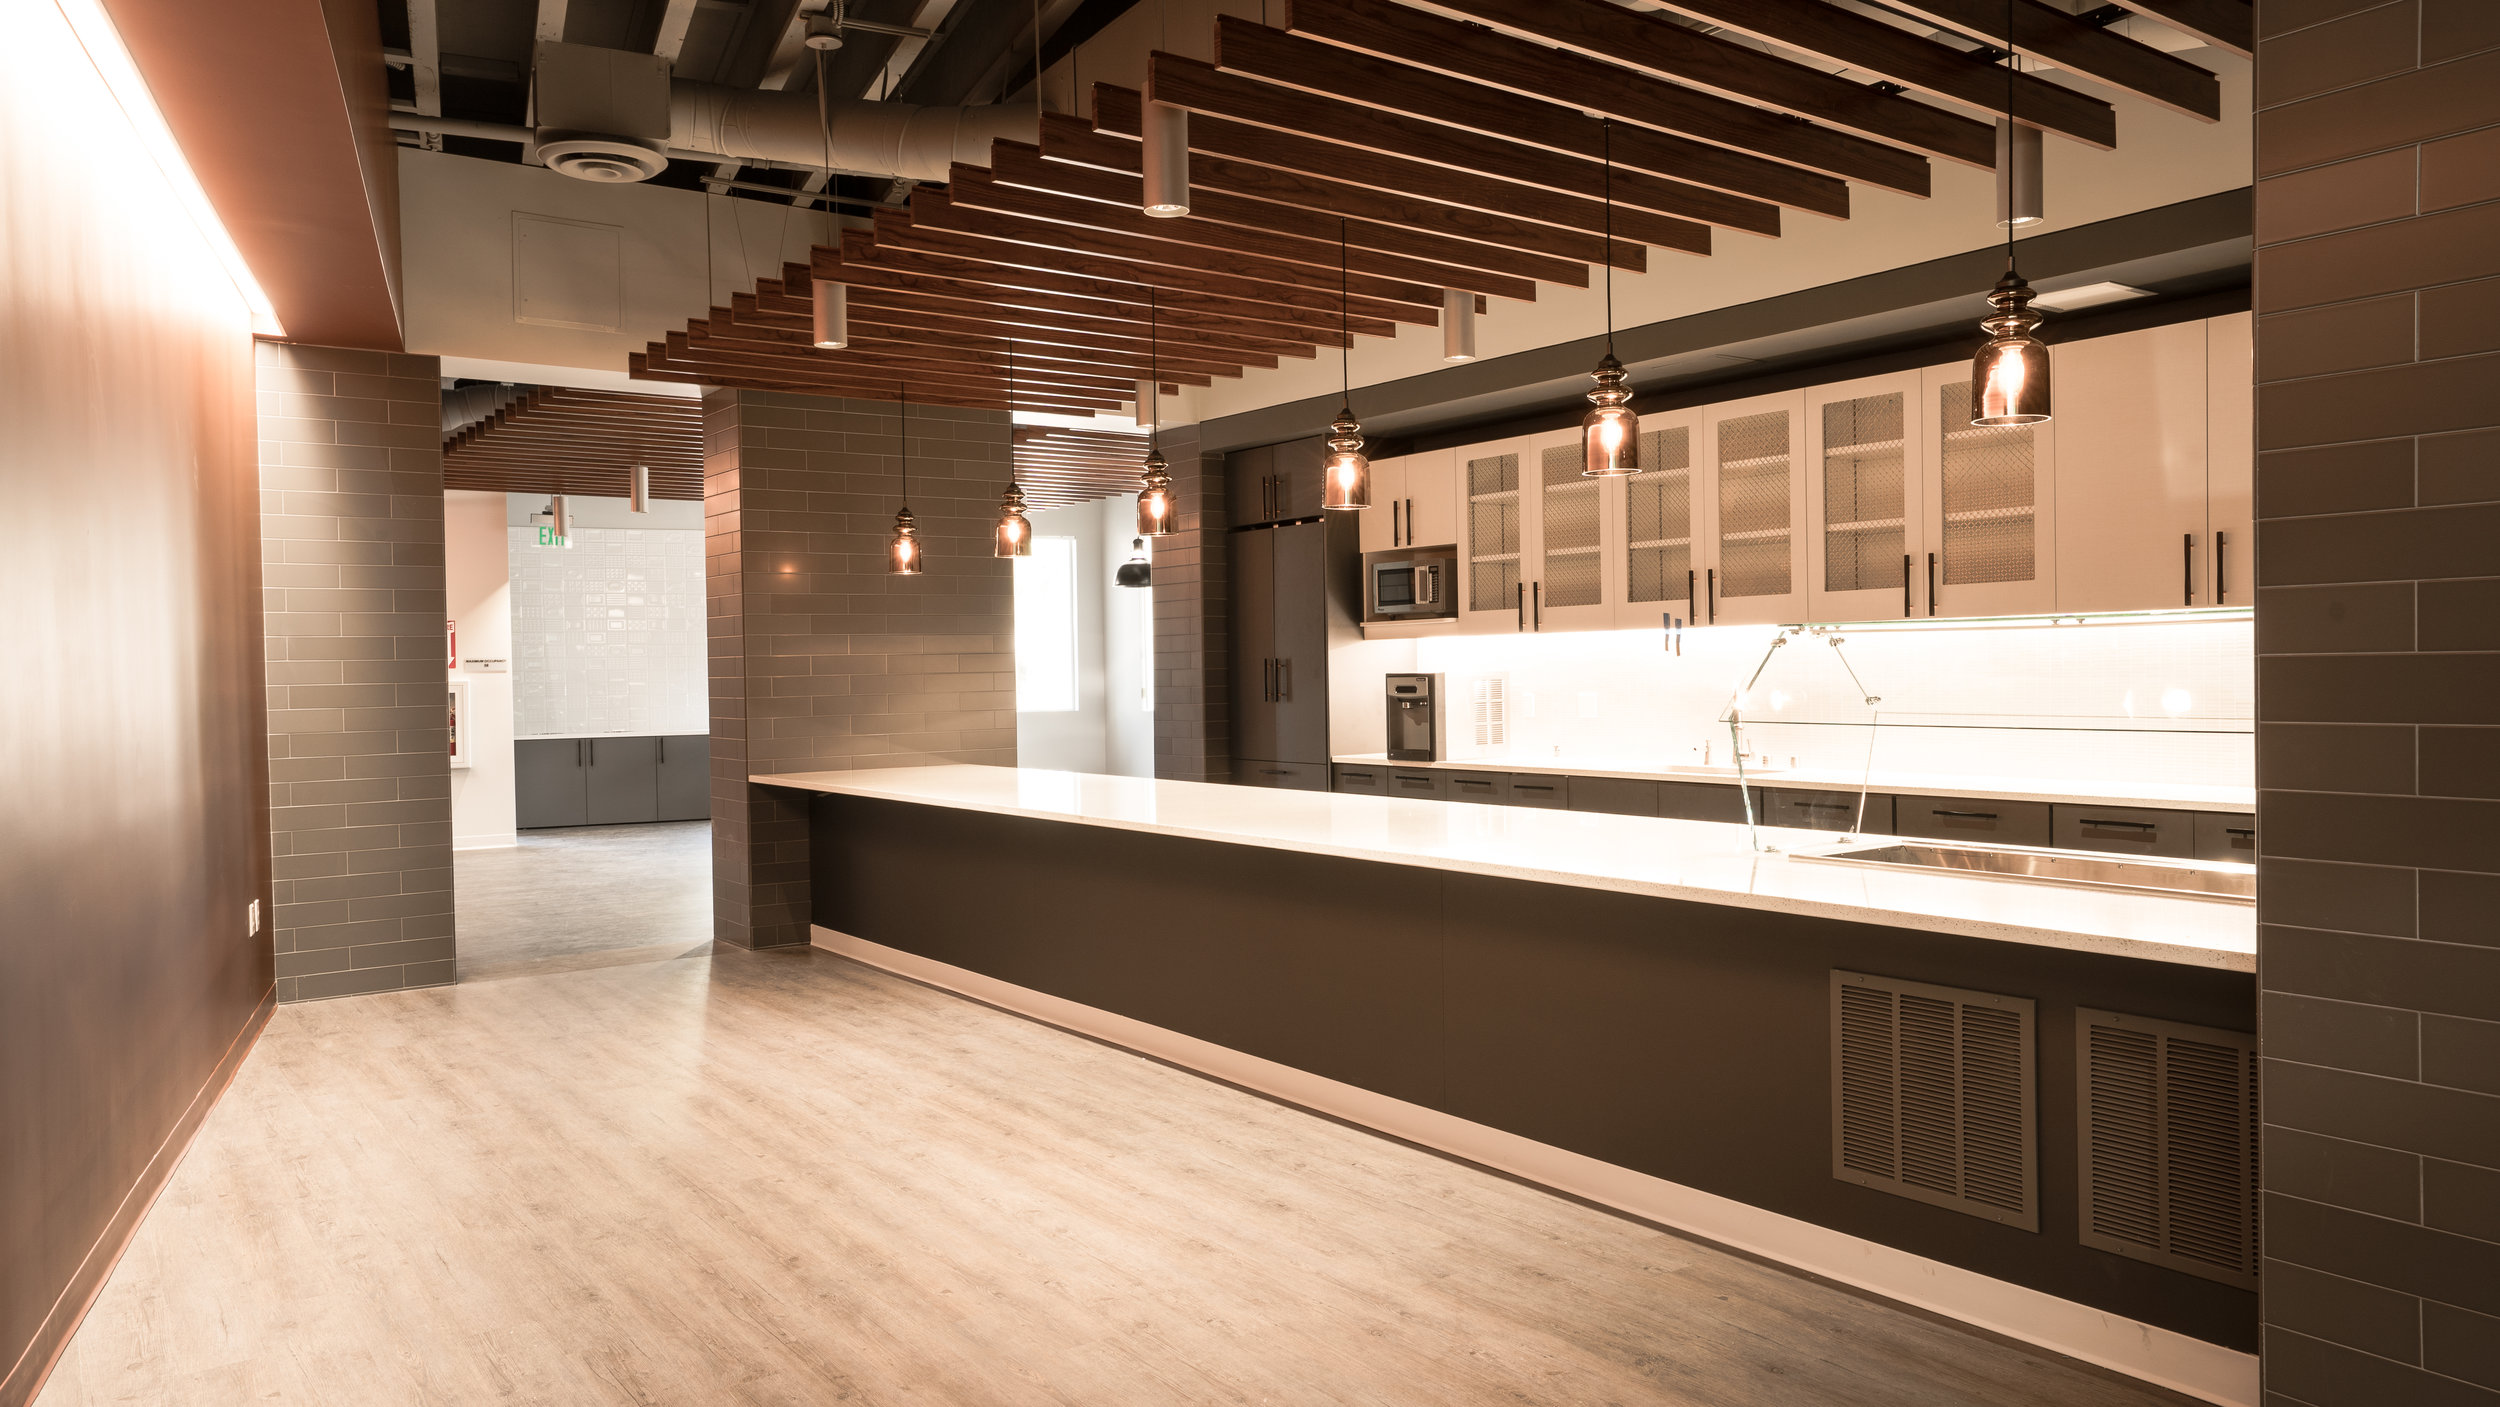 K.D. Stahl Construction Group Inc. - Welk resorts kitchen tenant improvements